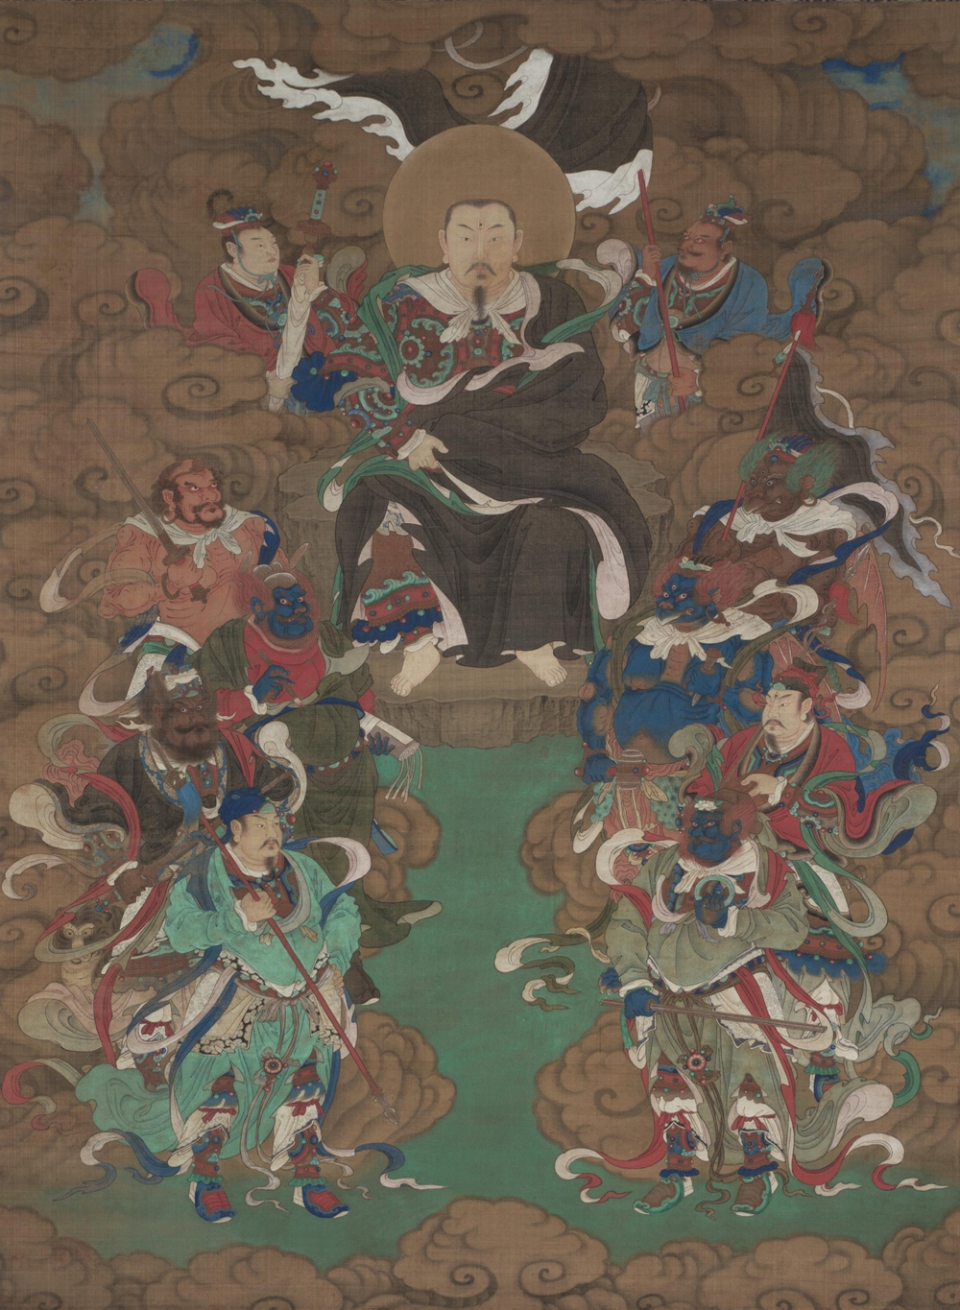 Zhenwu with an entourage of thunder marshals, early 15th century, Herbert F. Johnson Museum of Art, Cornell University